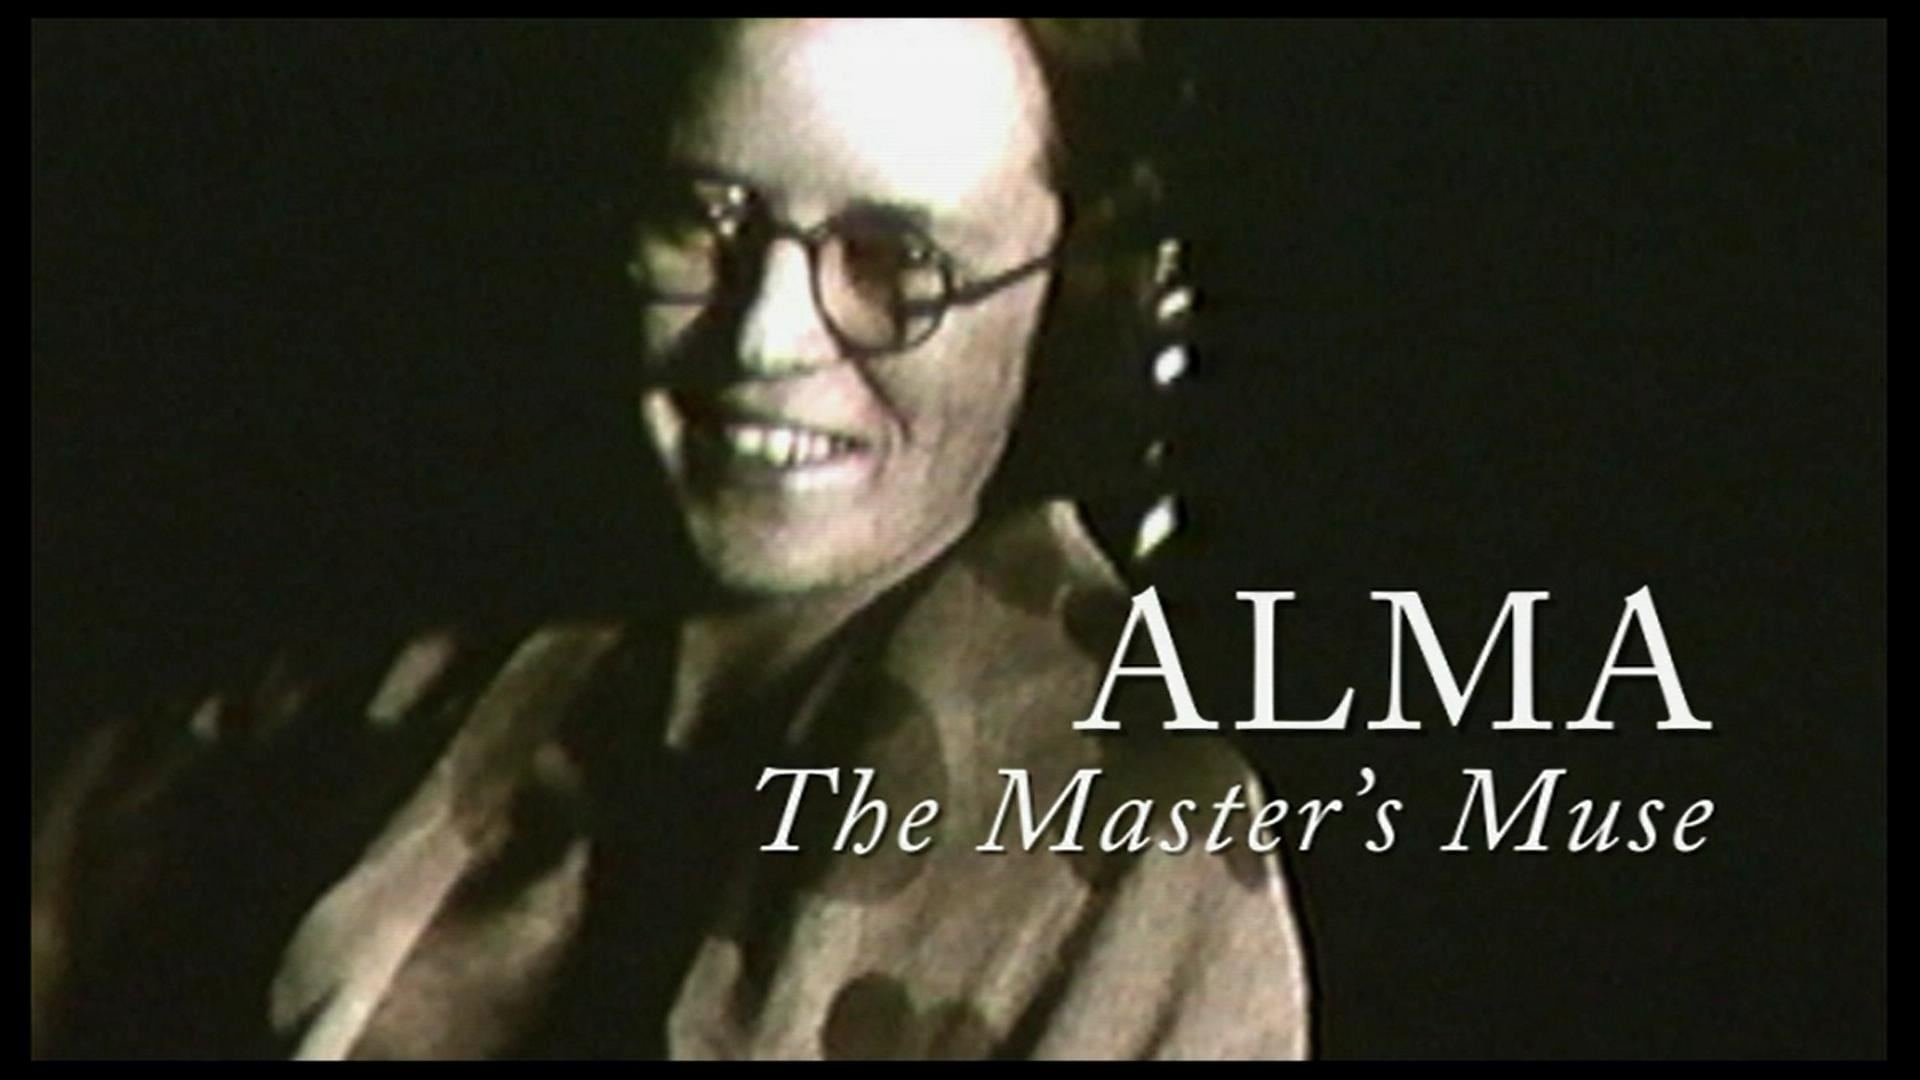 Alma: The Master's Muse (2008)